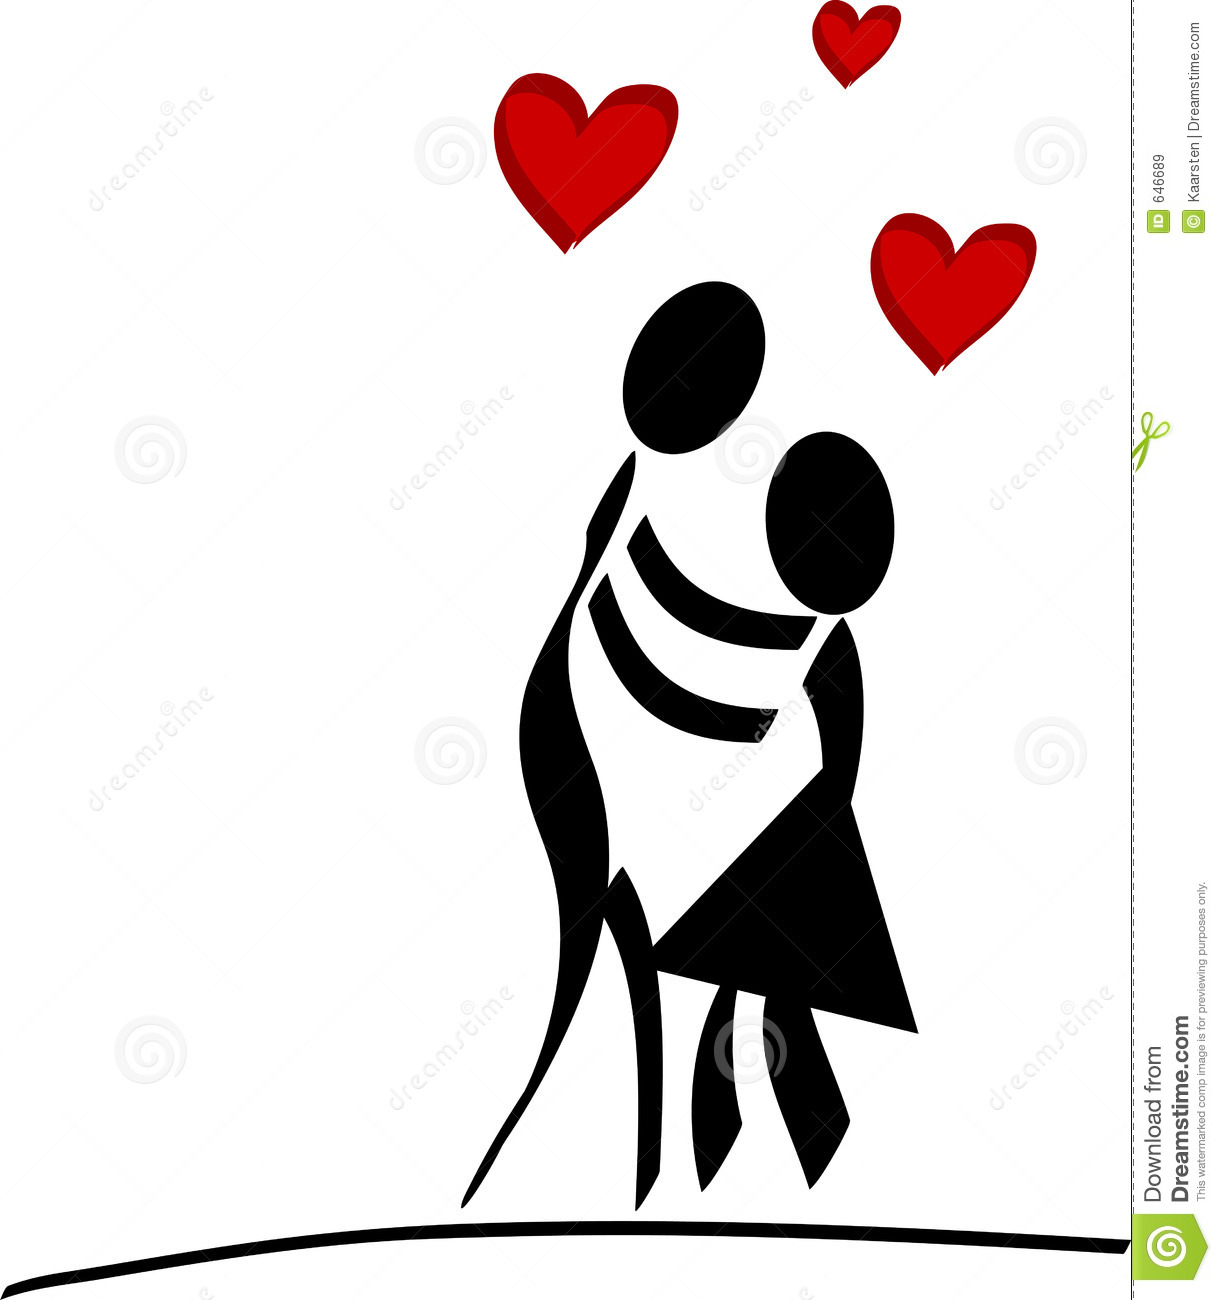 Couple In Love Royalty Free Stock Images - Image: 646689